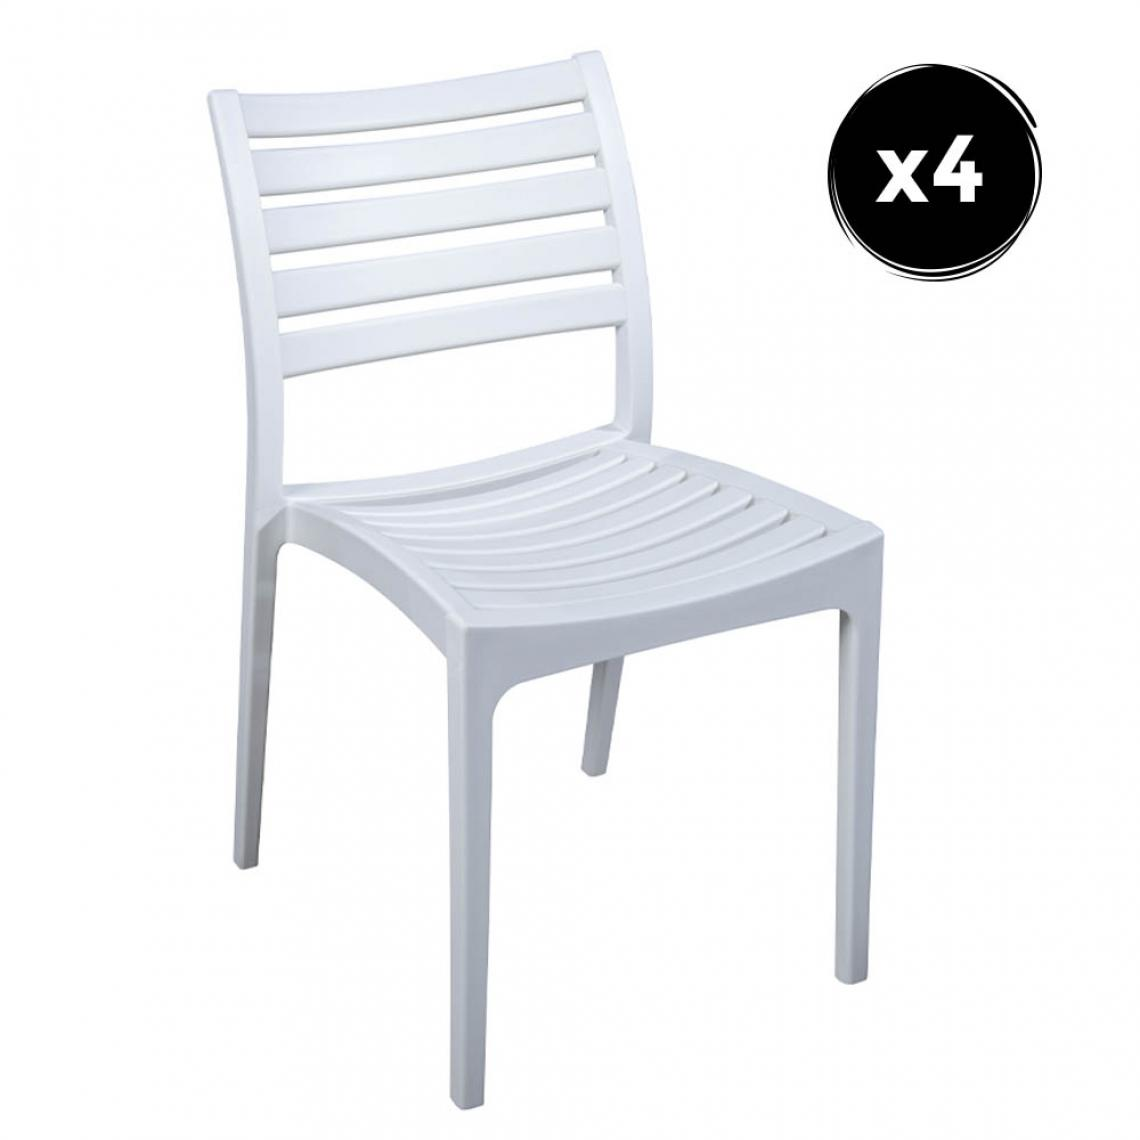 Imperial Relax Pack 4 Chaise Quebec Blanc Polipropilene